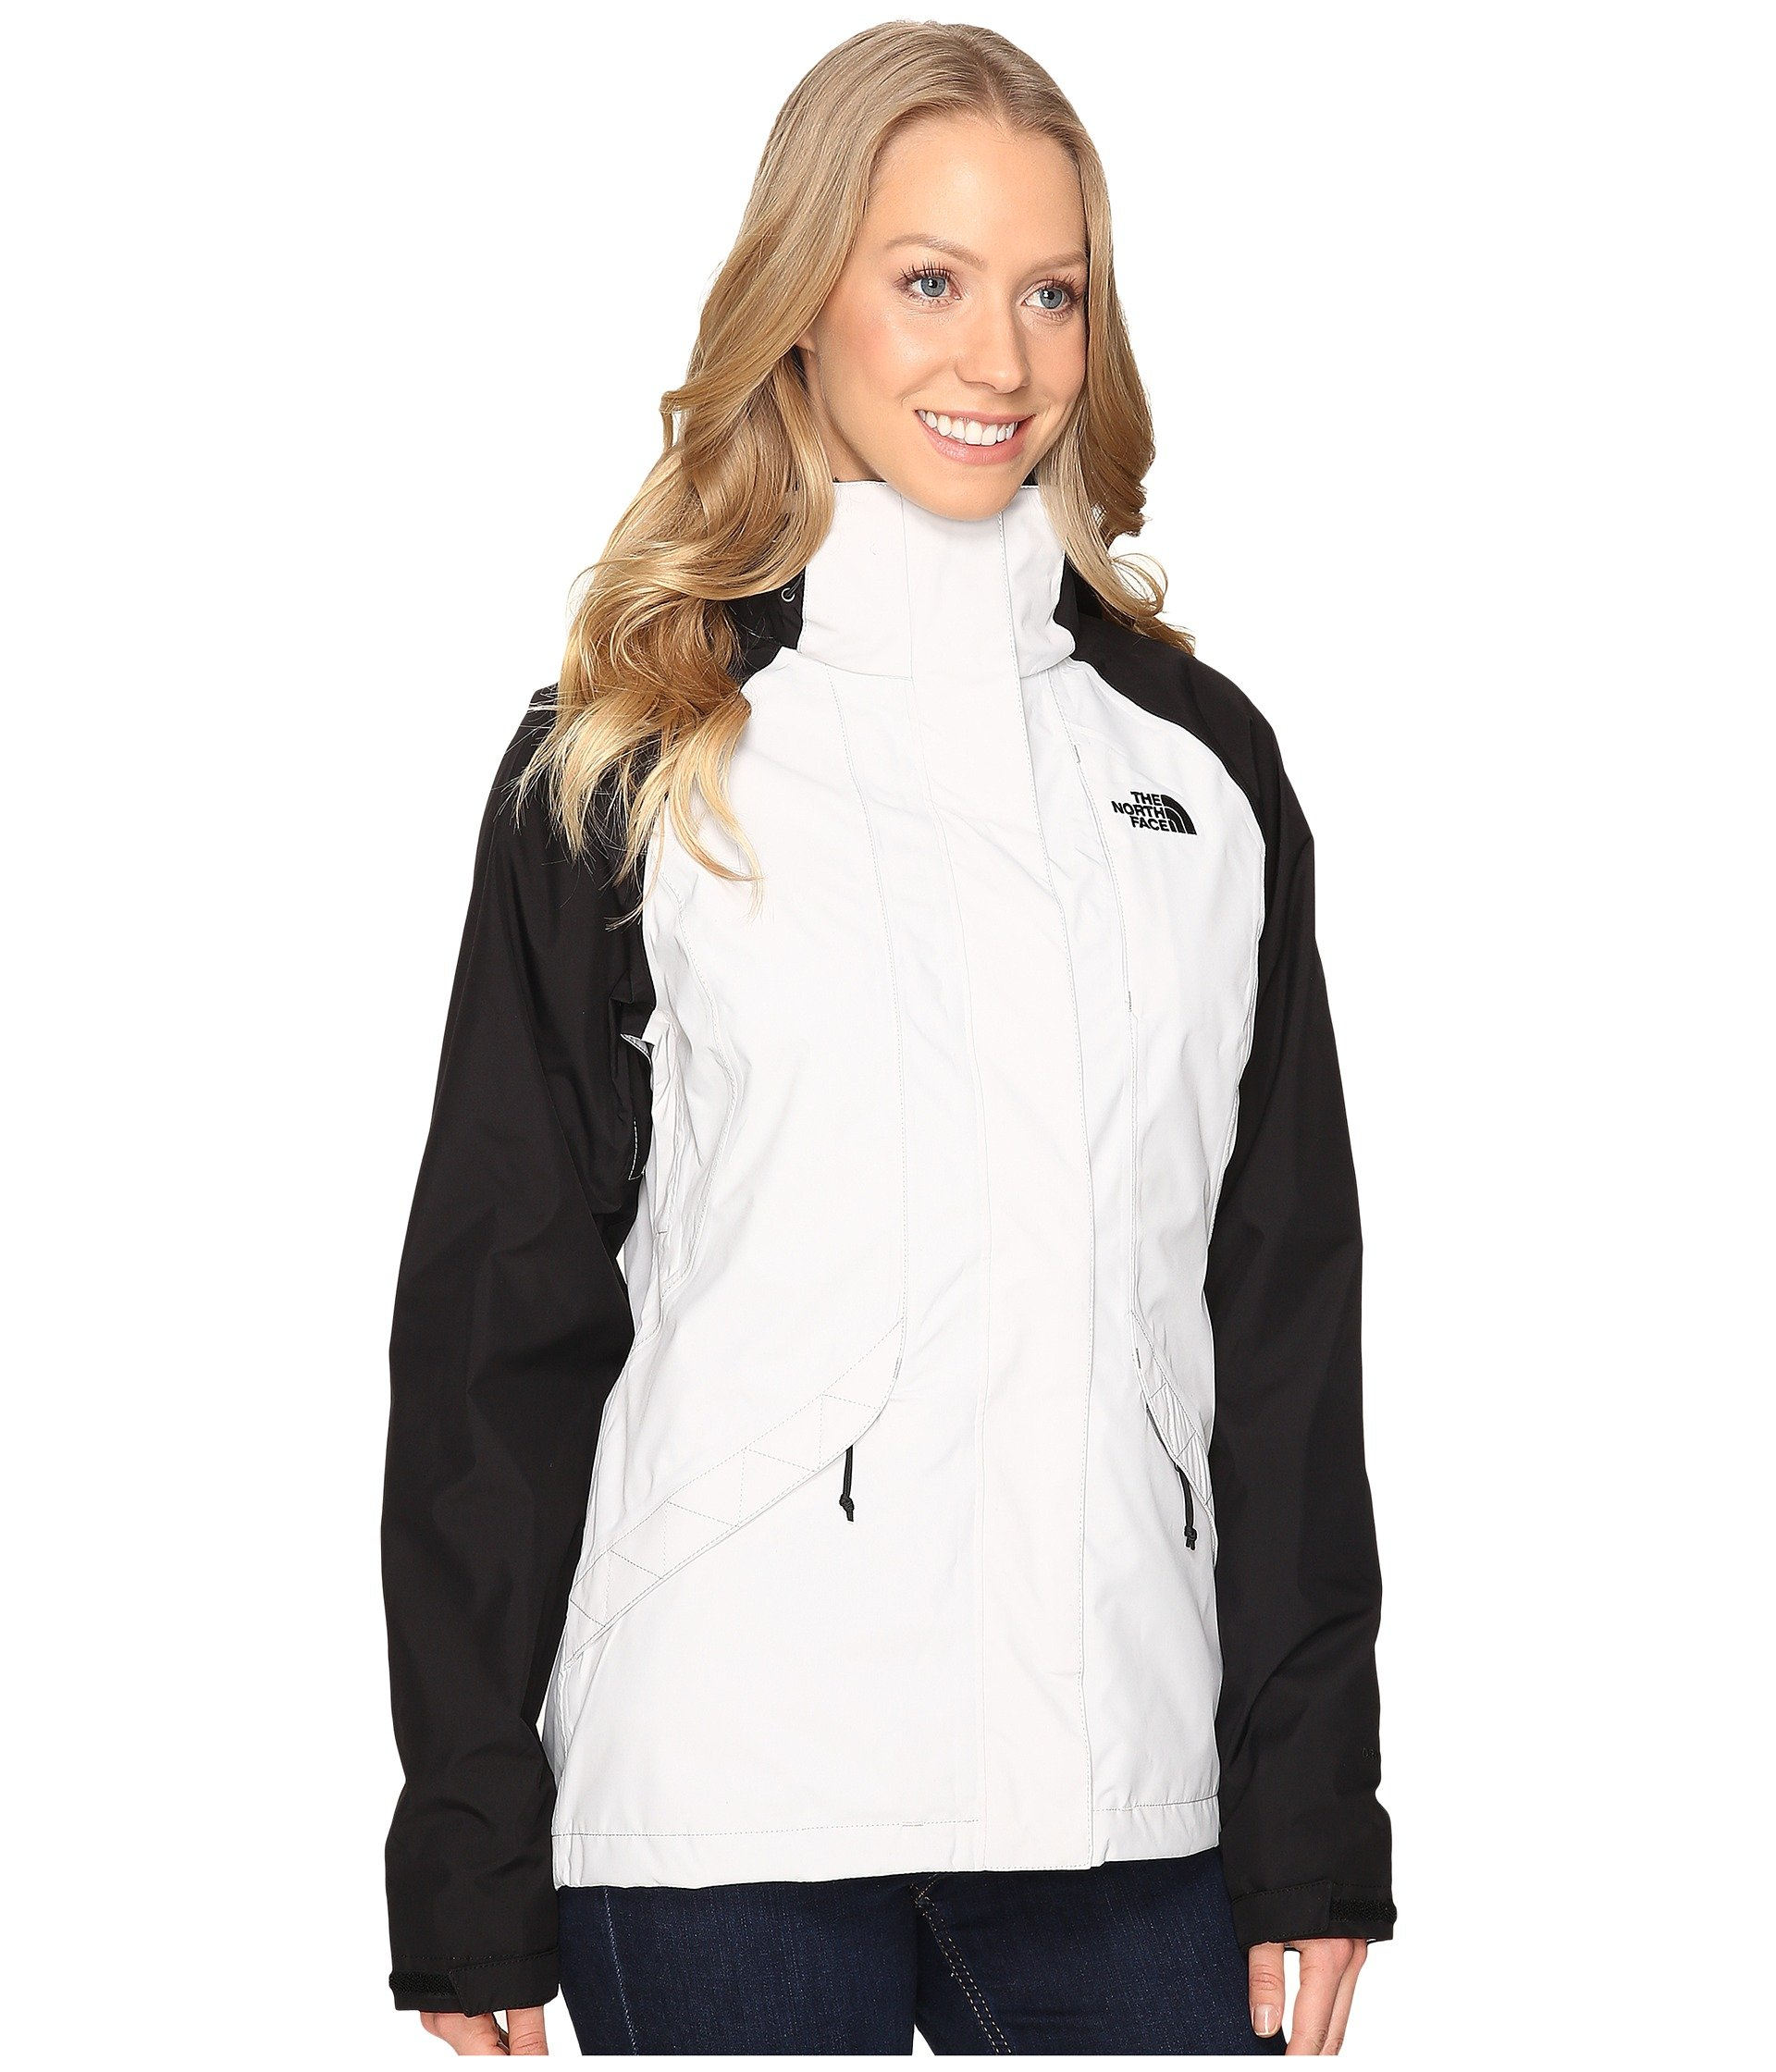 North Face Womens Boundary Triclimate Jacket - Large - Lunar Ice Grey/TNF Black by The North Face (Image #5)